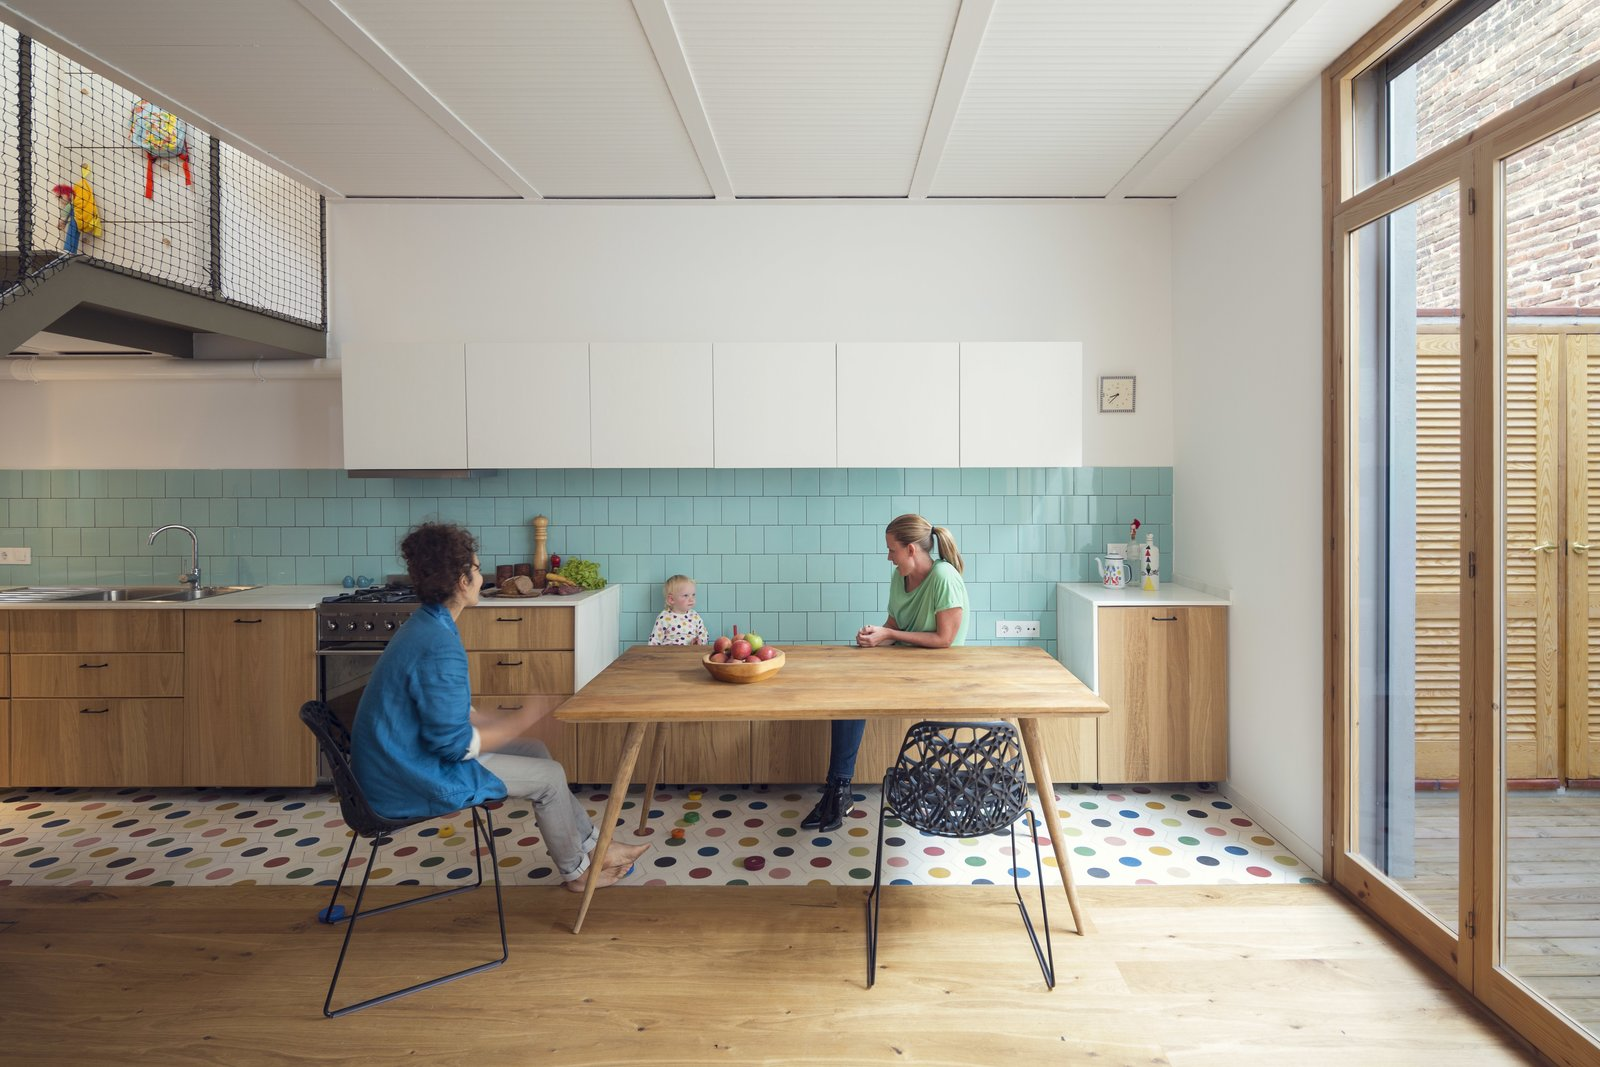 A narrow band of ceramic tiling delineates the compact kitchen from the rest of the room. Built-in cabinetry doubles as seating to help integrate the kitchen into the dining area. The table from Maison du Monde spans the subtle divide.  A 16-Foot-Wide Barcelona Row House Gets Creative to Stay Bright and Airy by Alex Vuocolo